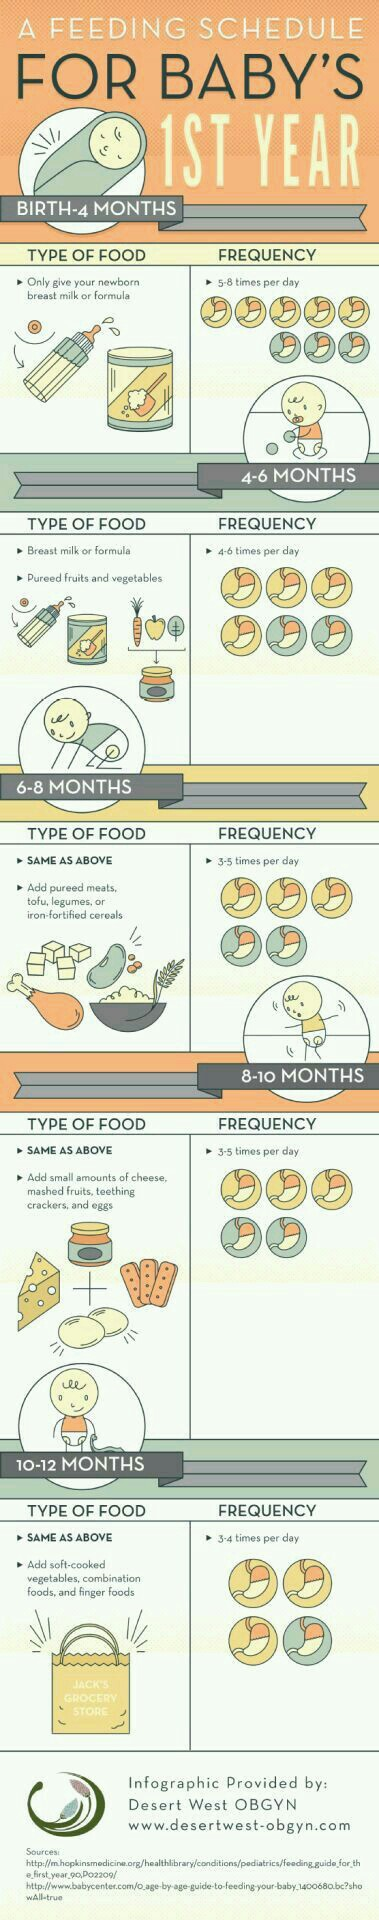 Pin By Monique Harris On O Baby    Pregnancy Babies